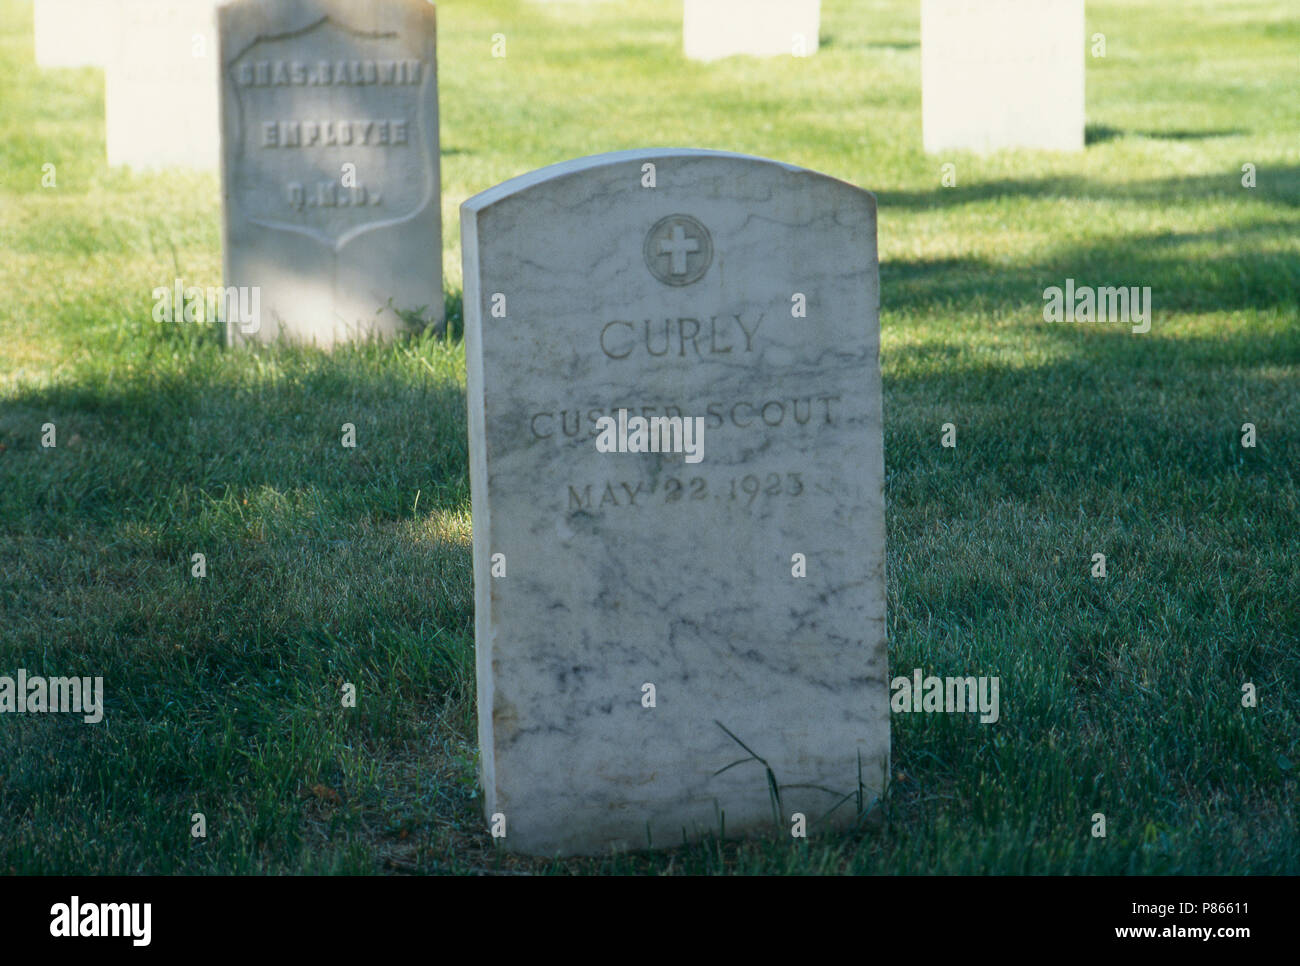 Grave of Curley, Custer's Native American scout, Custer National Cemetery, Montana. Photograph - Stock Image